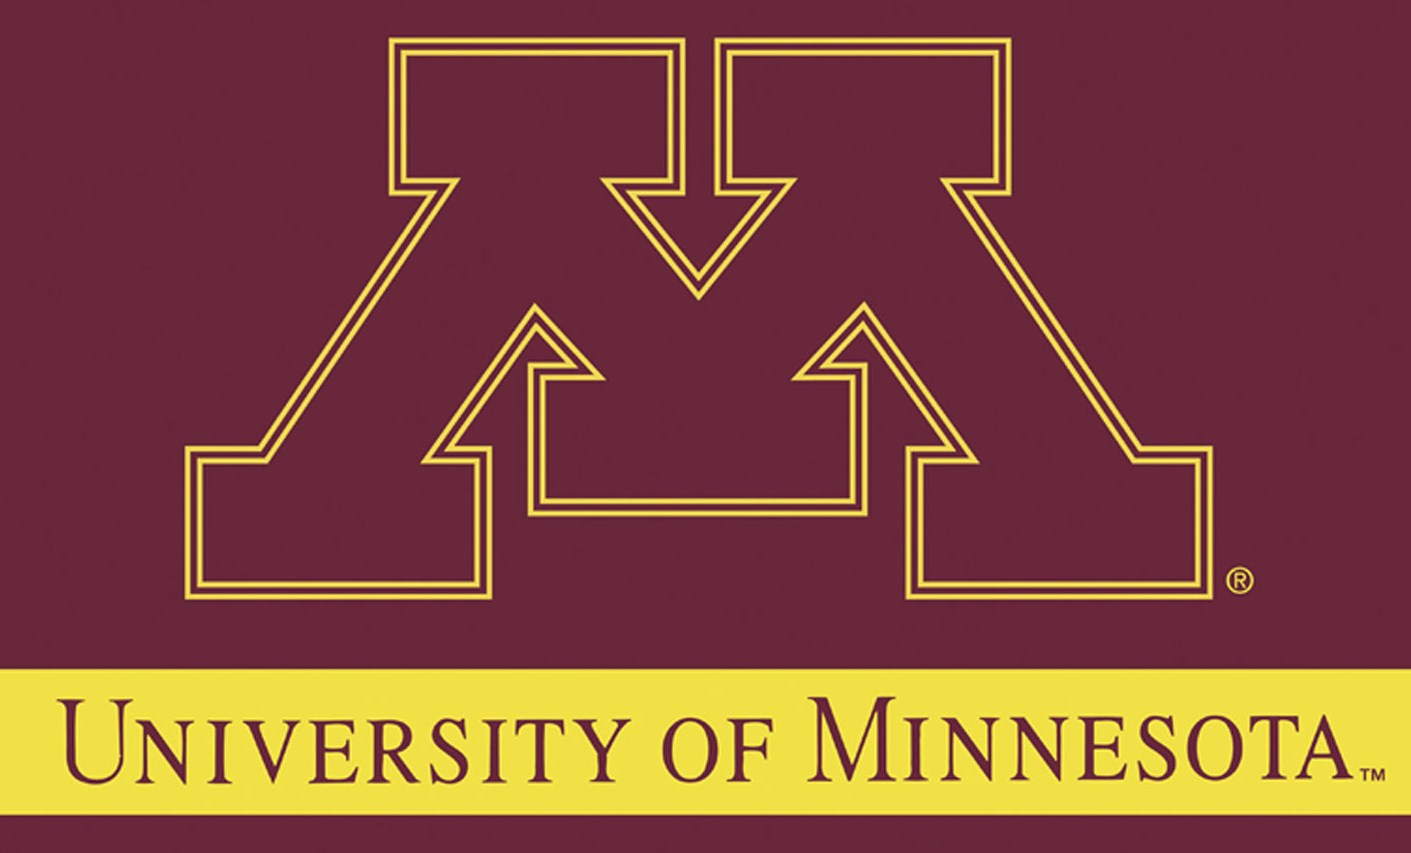 University Of Minnesota Wallpaper